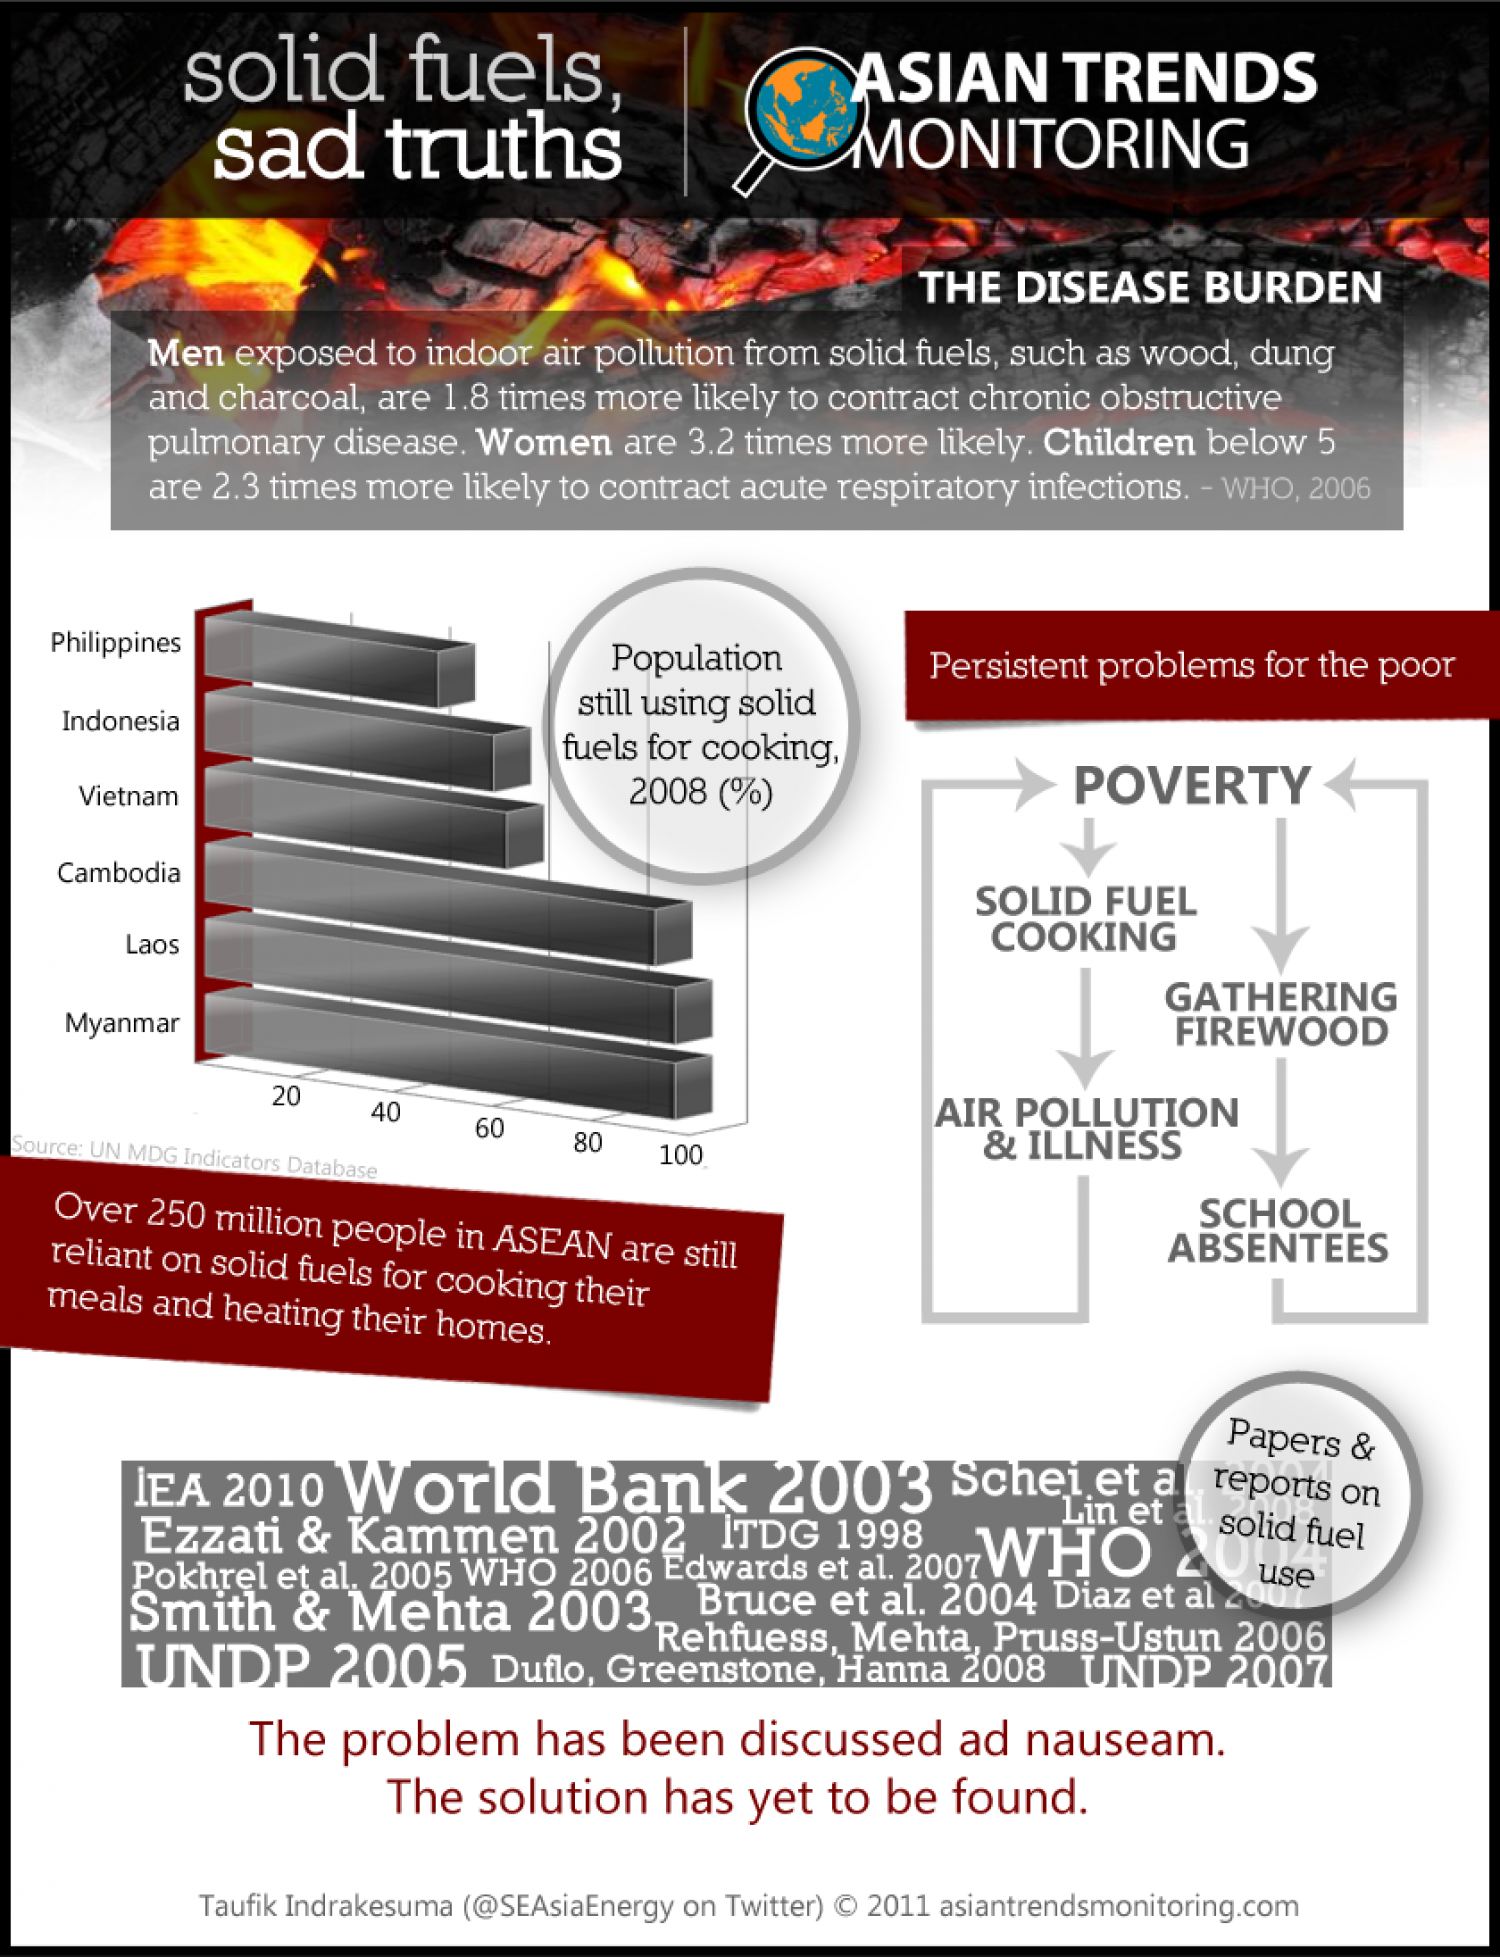 What would you do if cooking endangered your life? Infographic